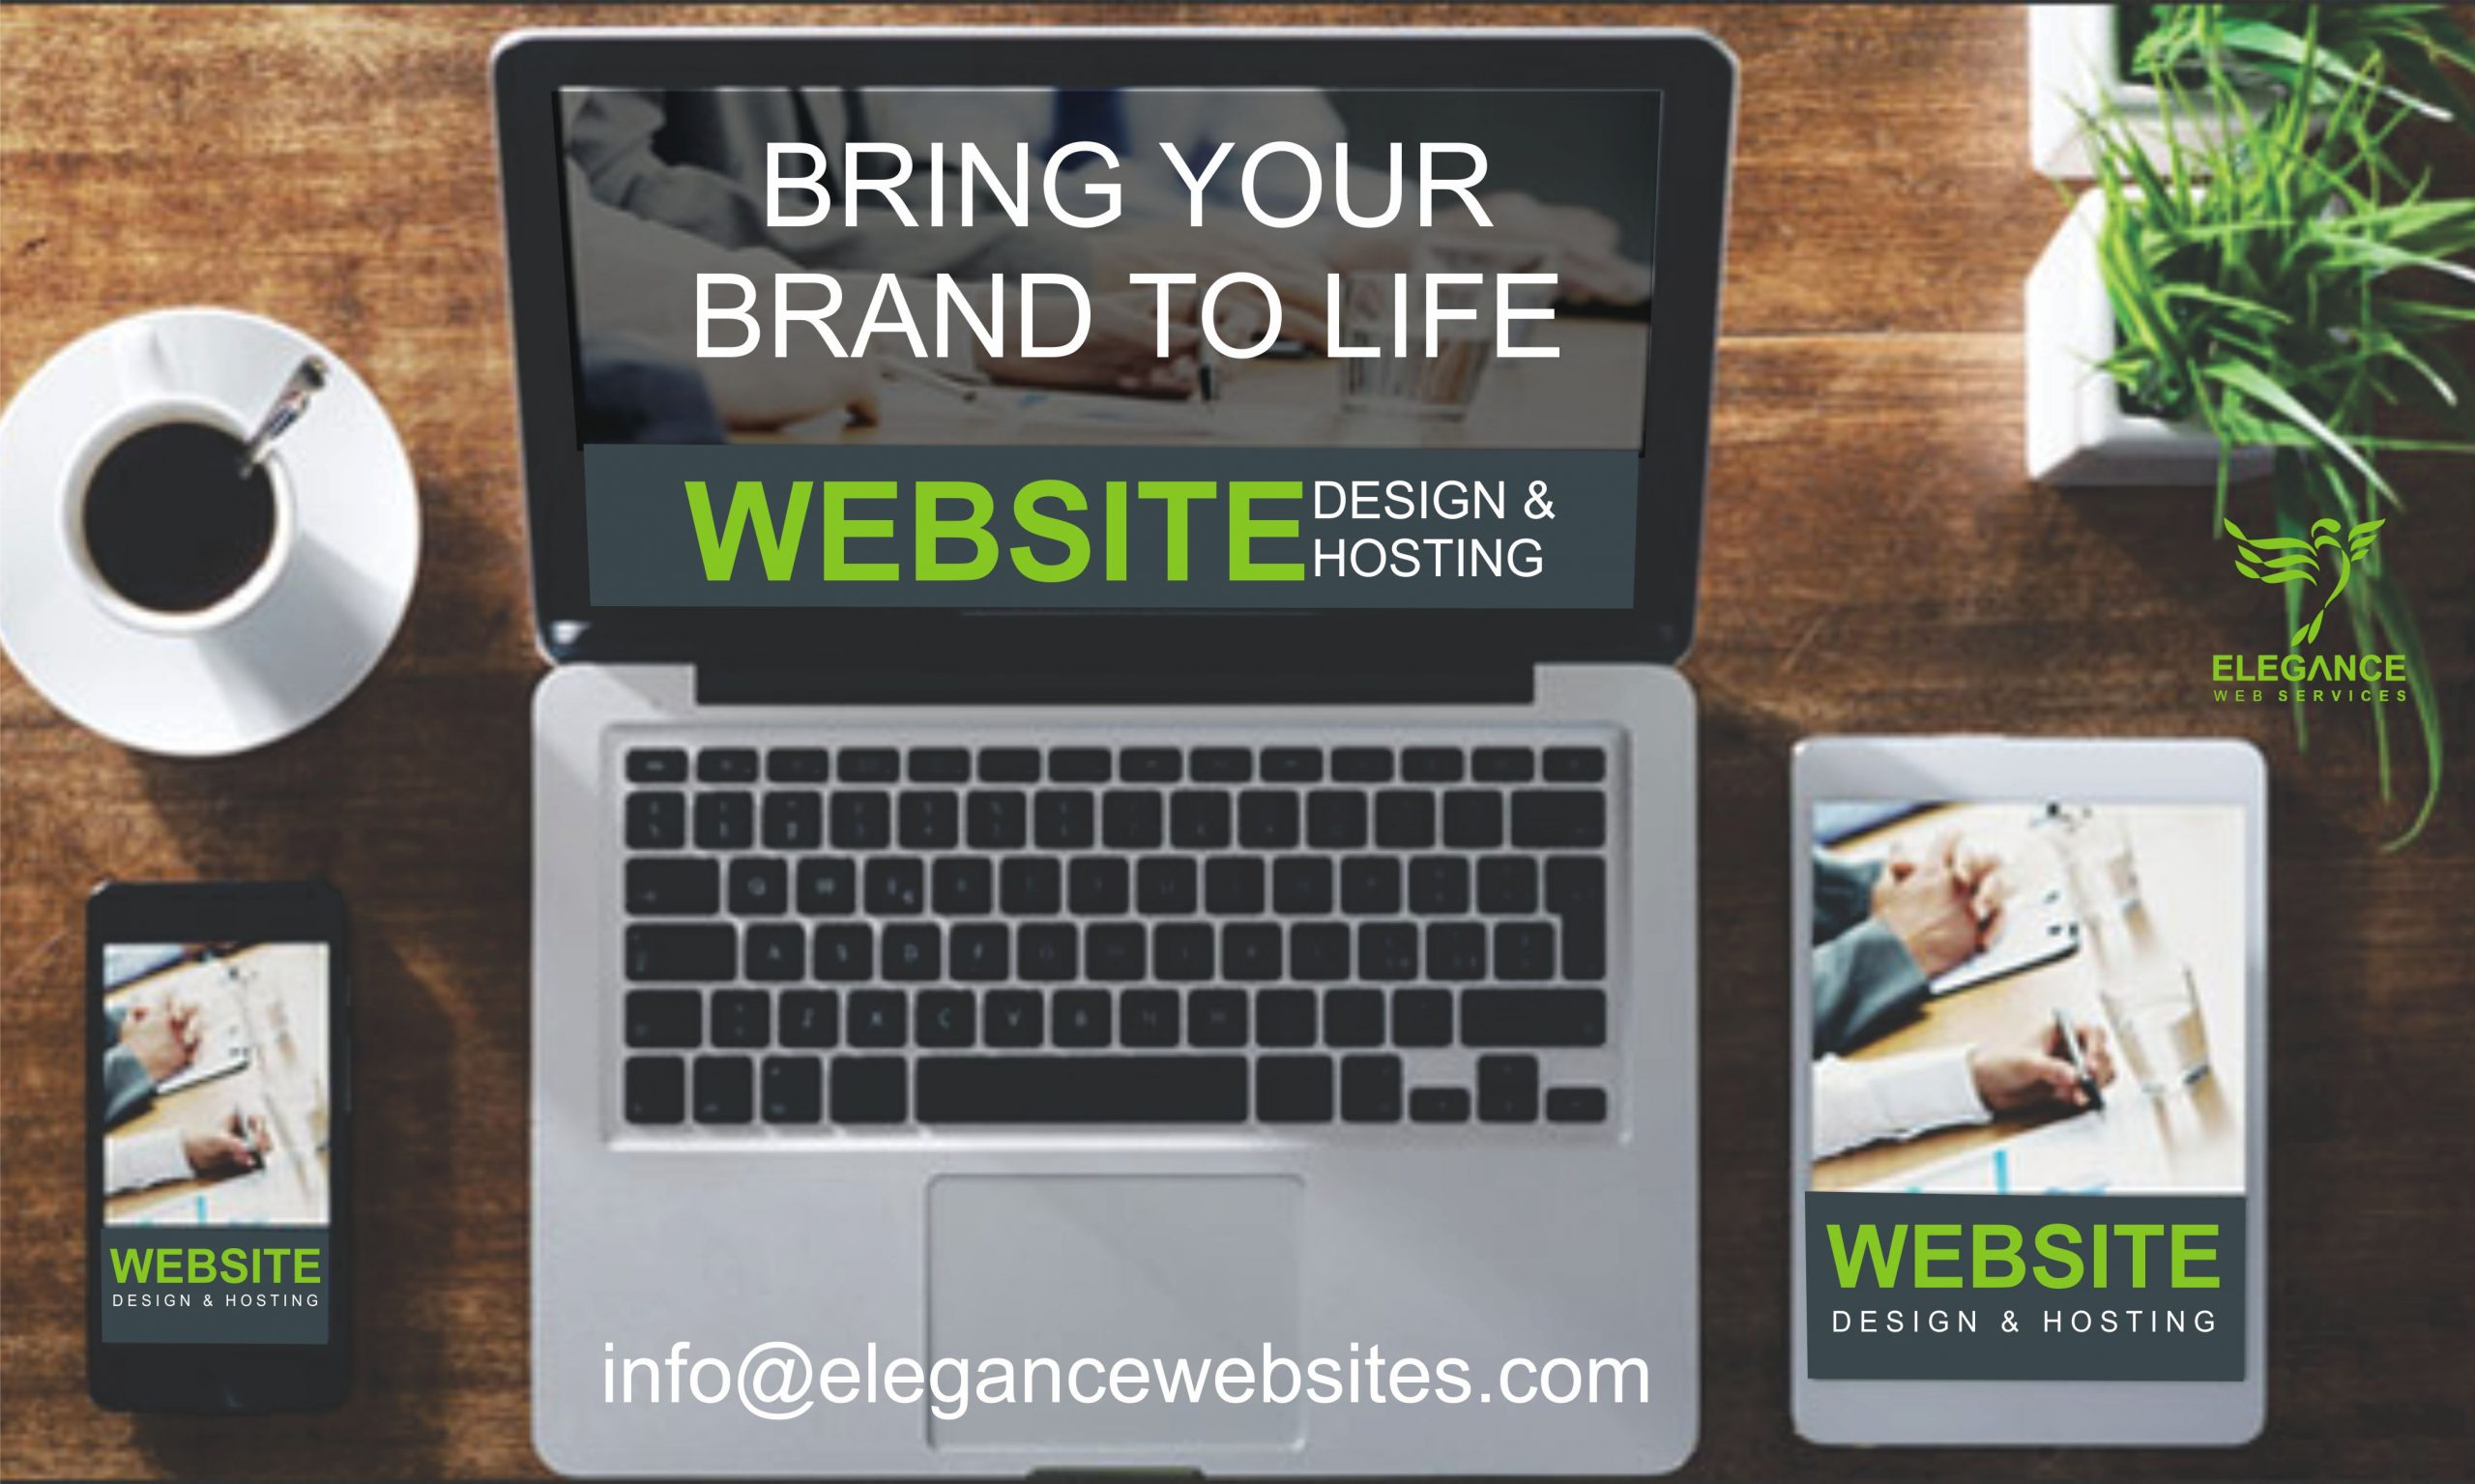 The Full-Service Web Design Agency You've Been Looking For